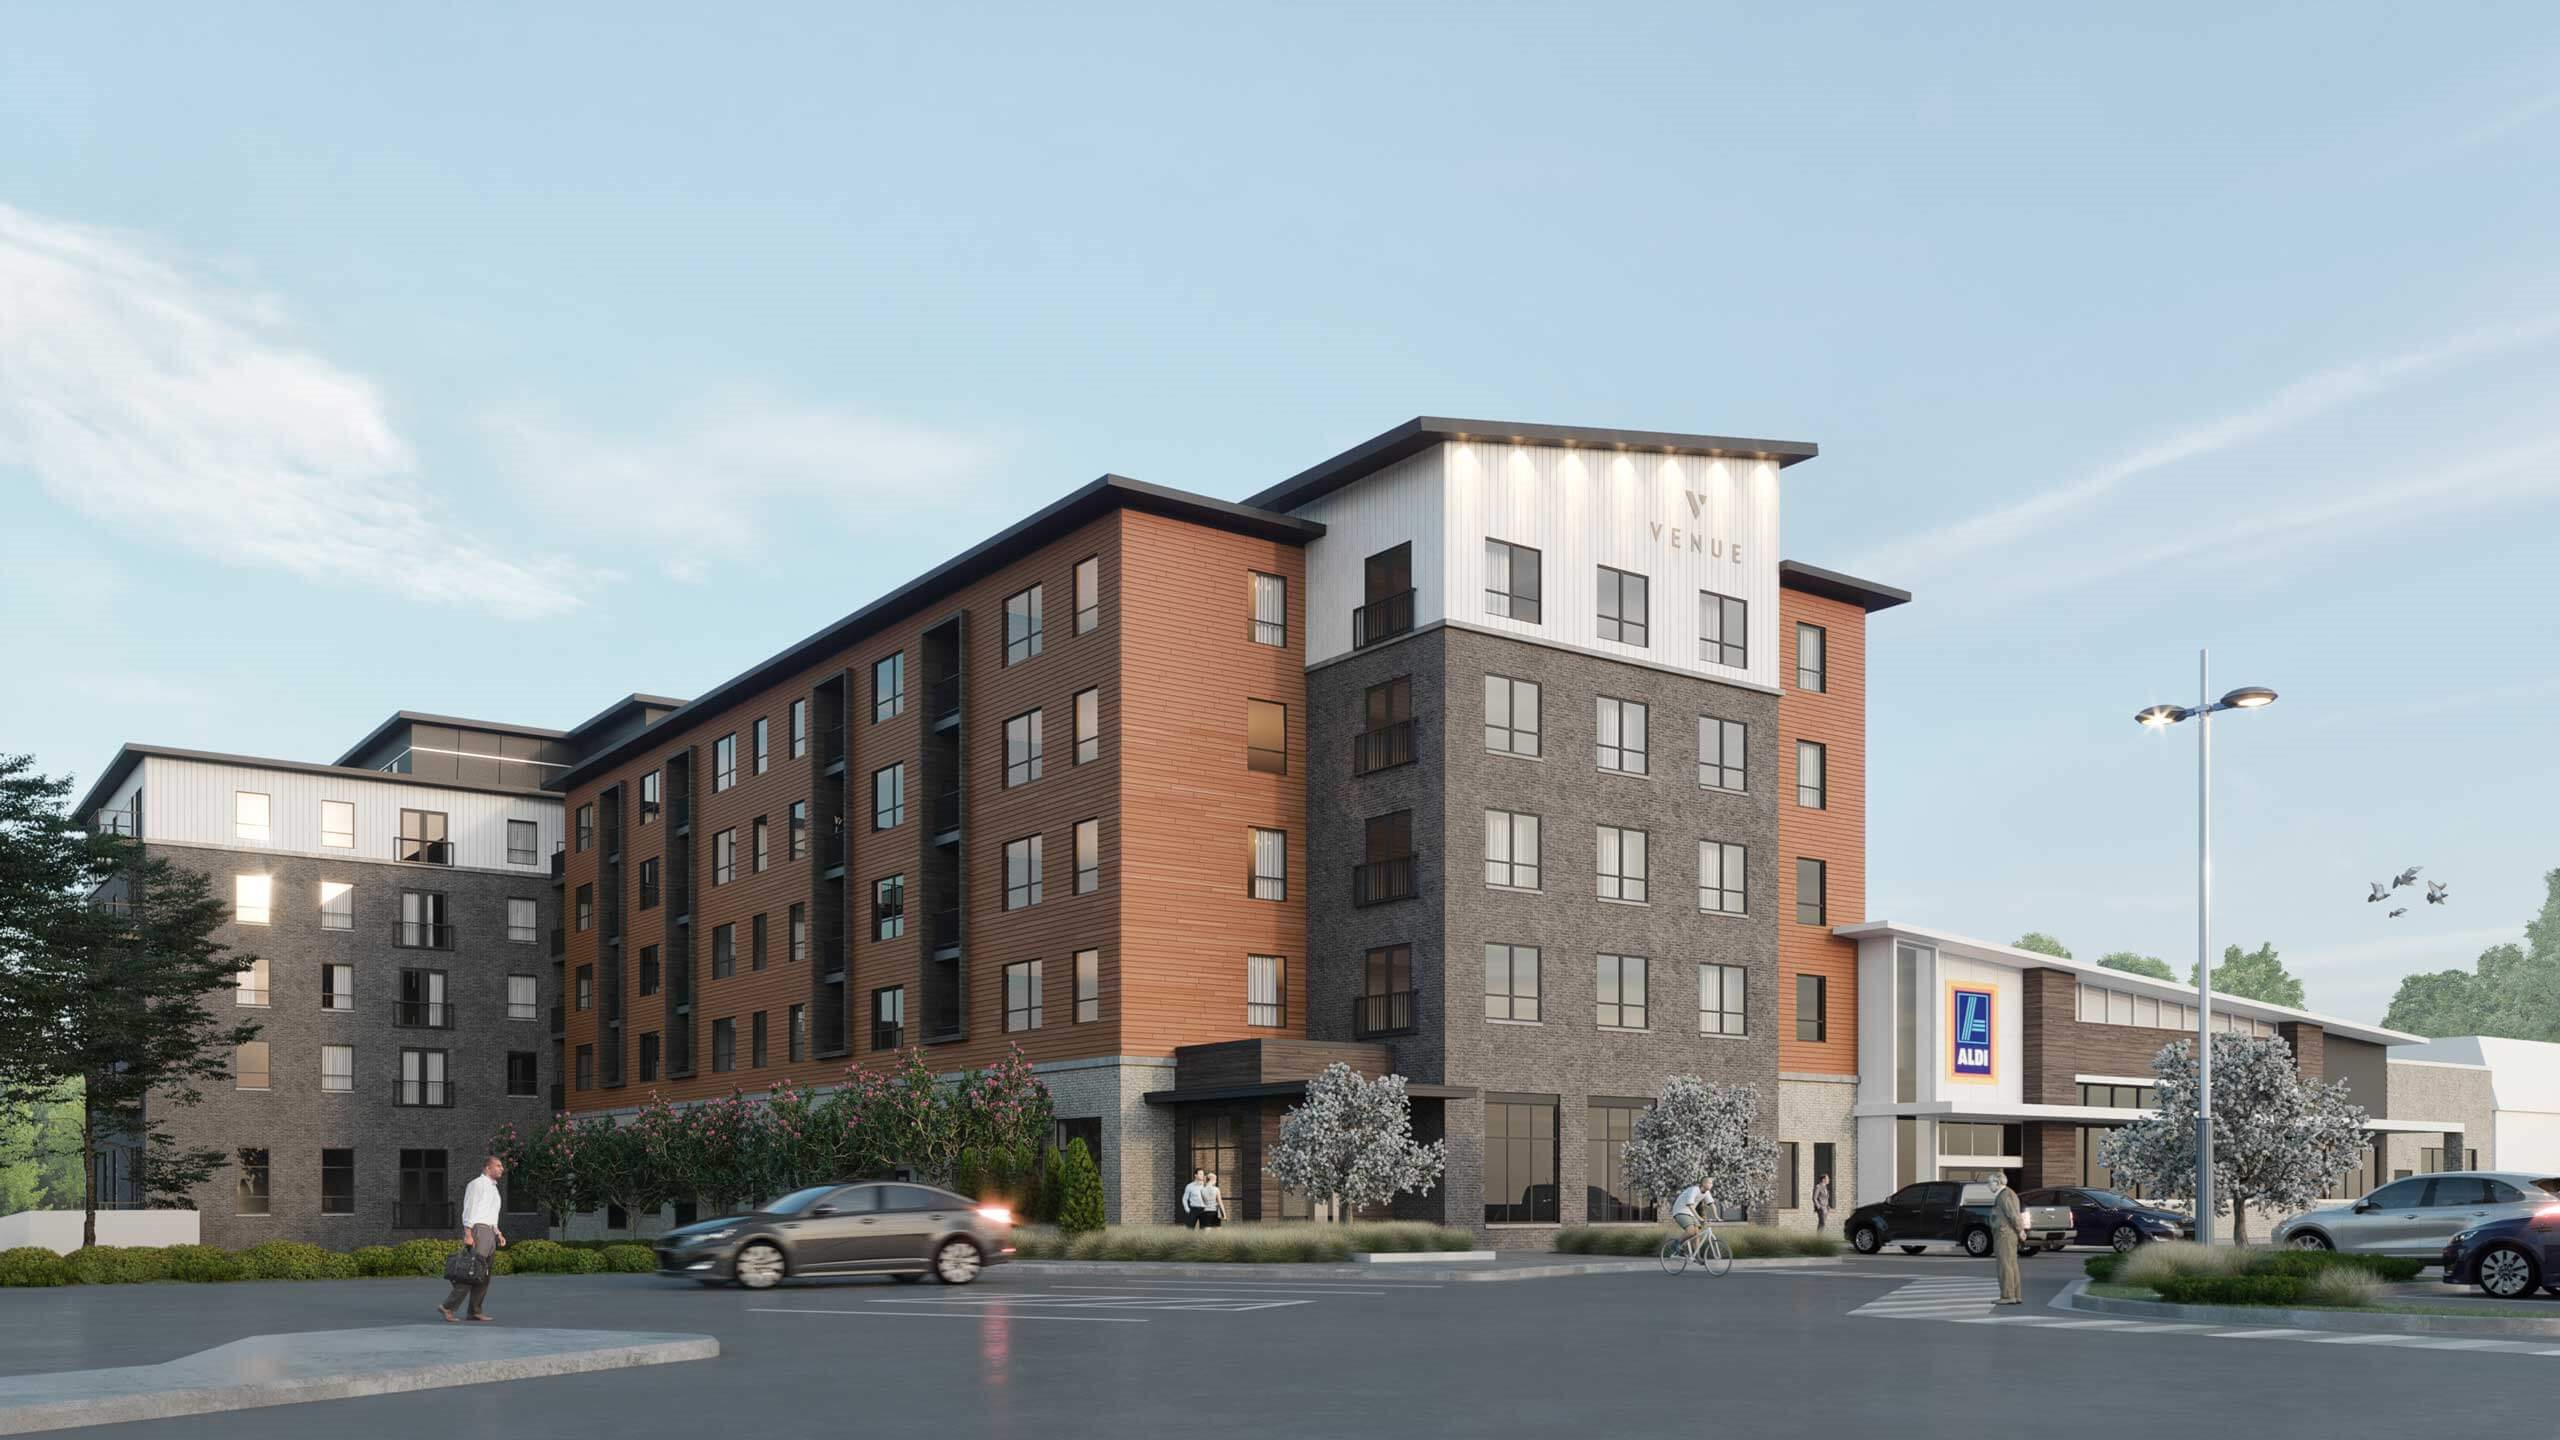 Rendering of Exterior of Venue Apartments in Chanhassen